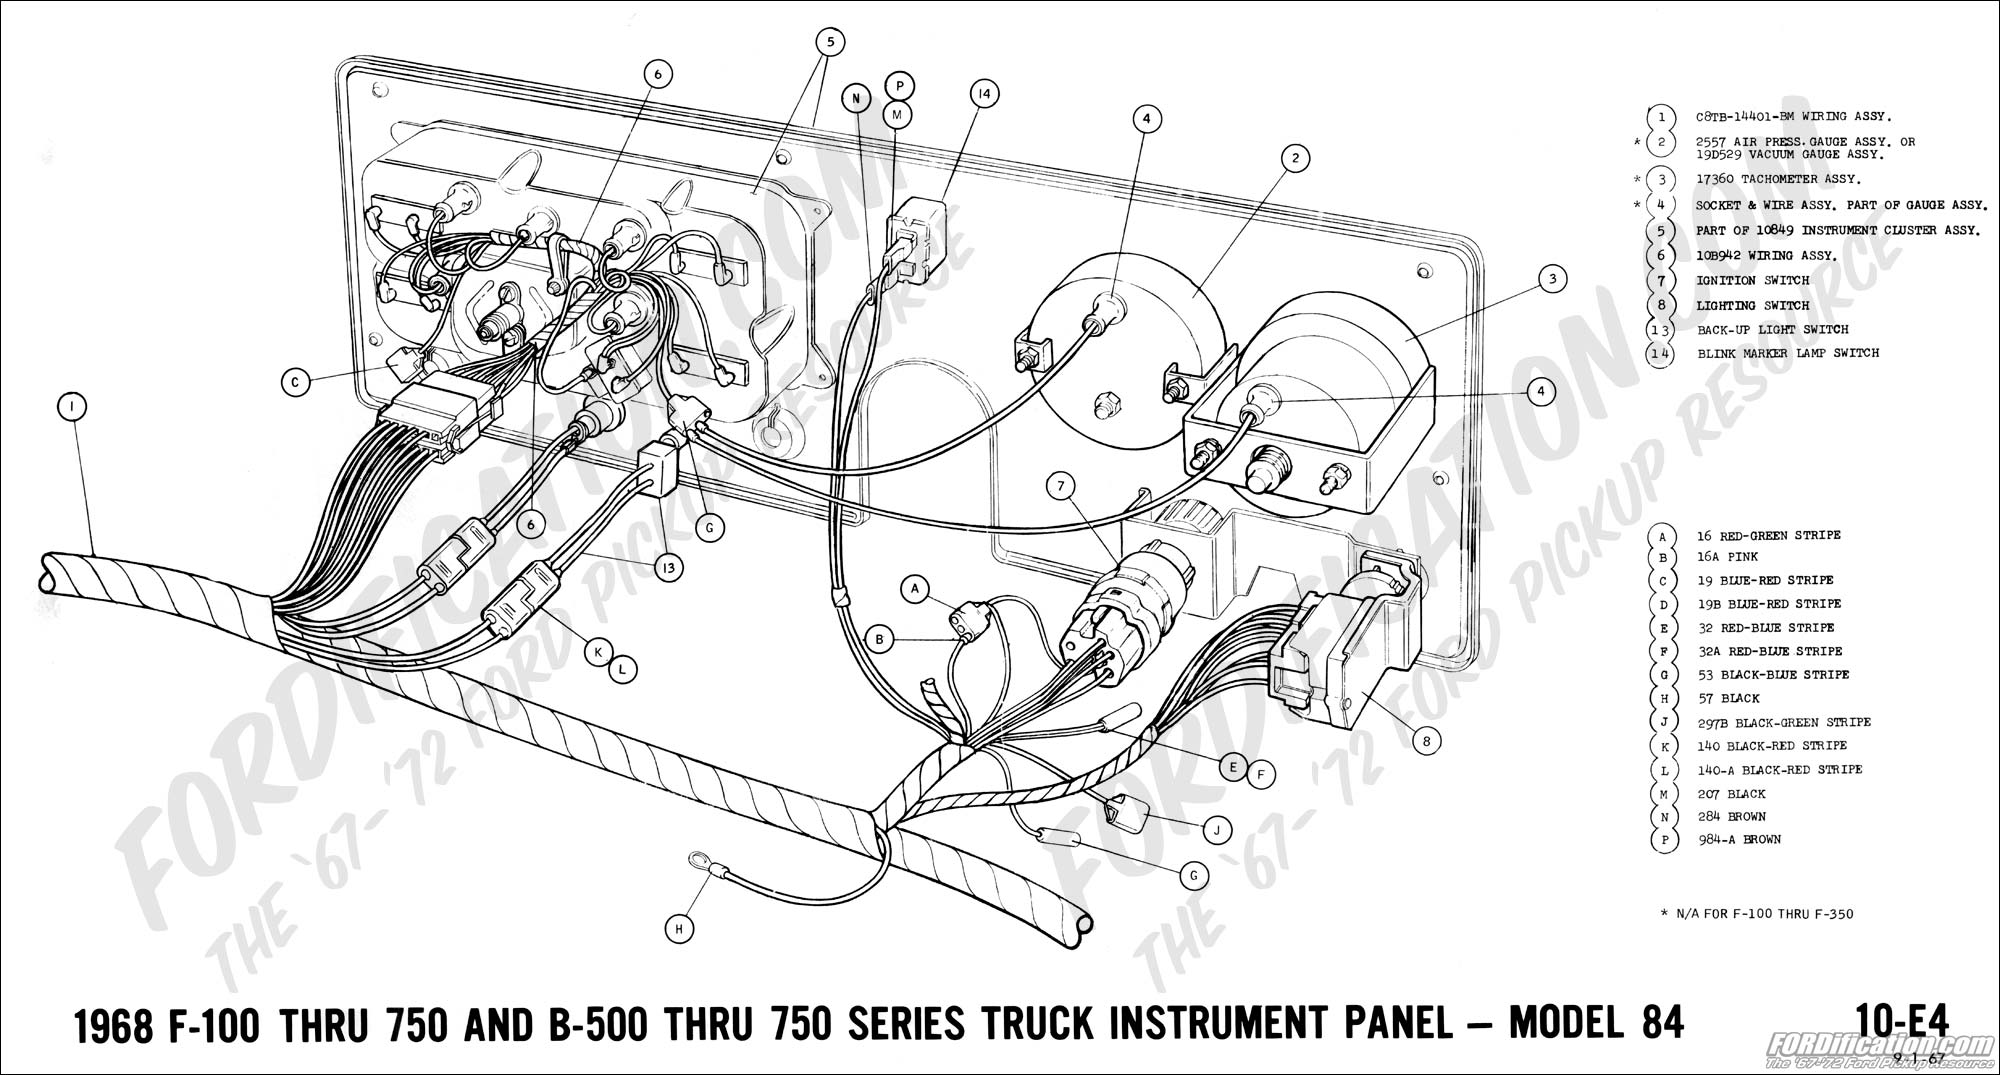 1975 Camaro Wiring Diagram